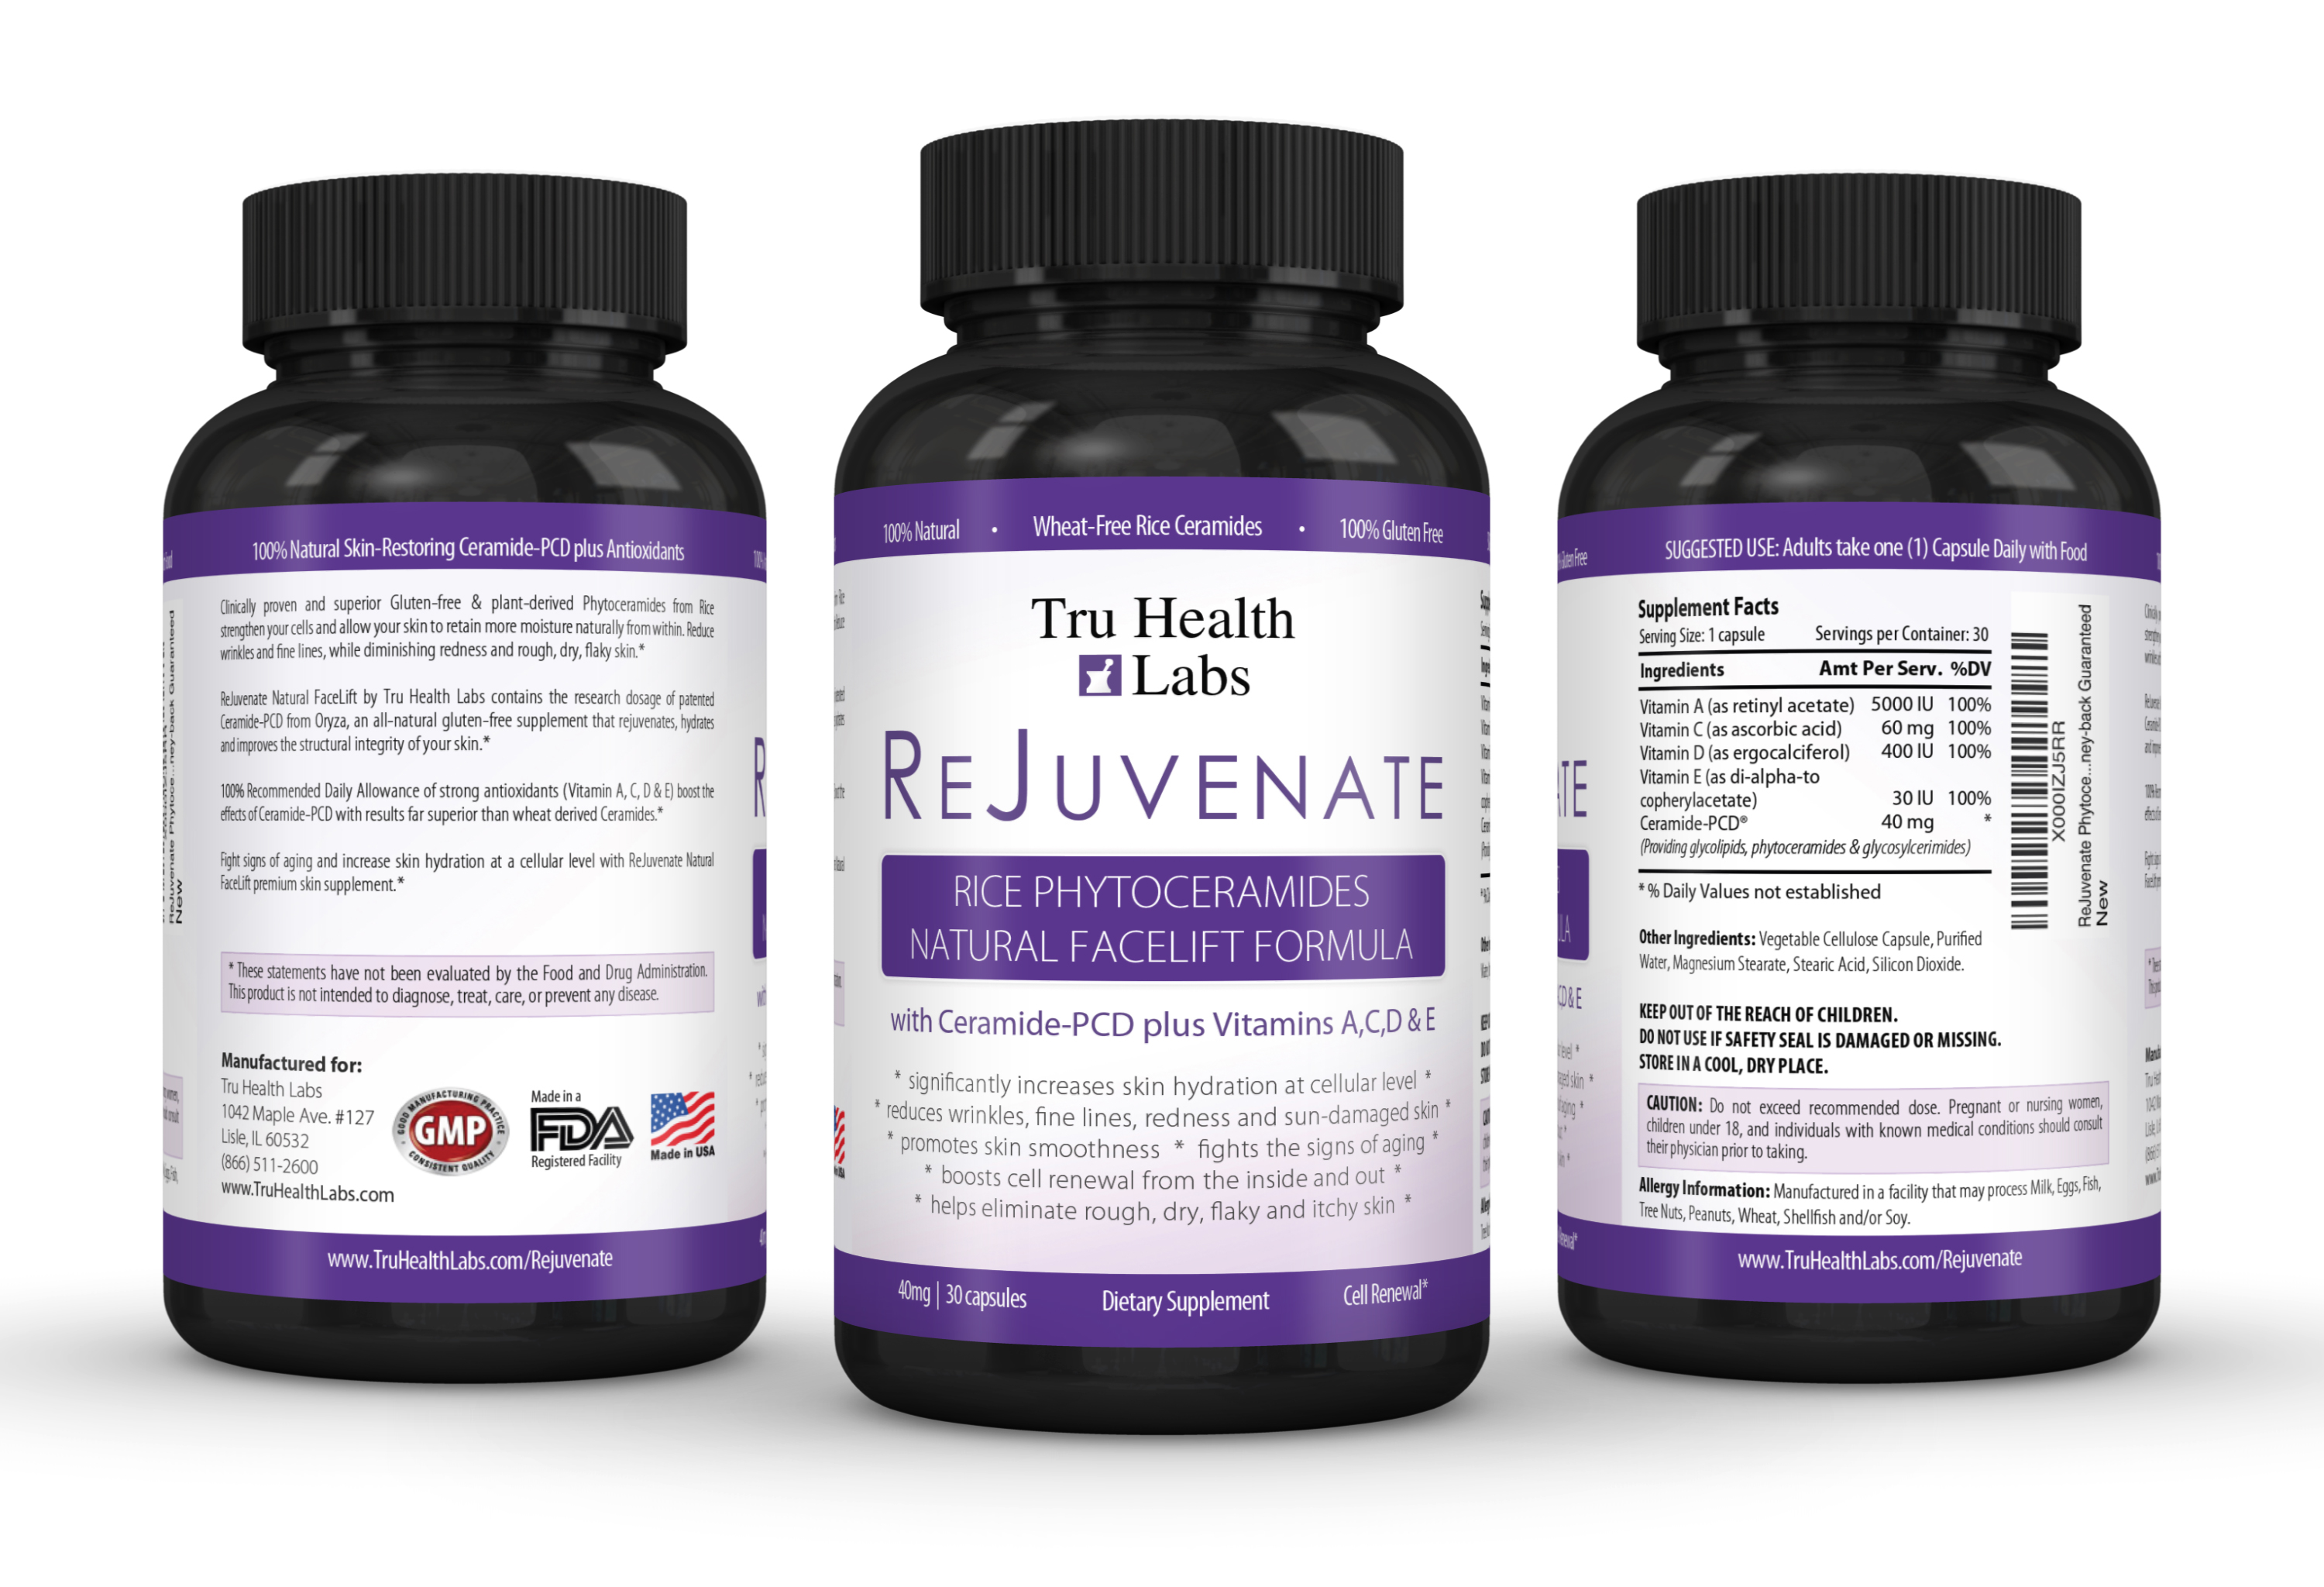 SAVE 56% on ReJuvenate Now!